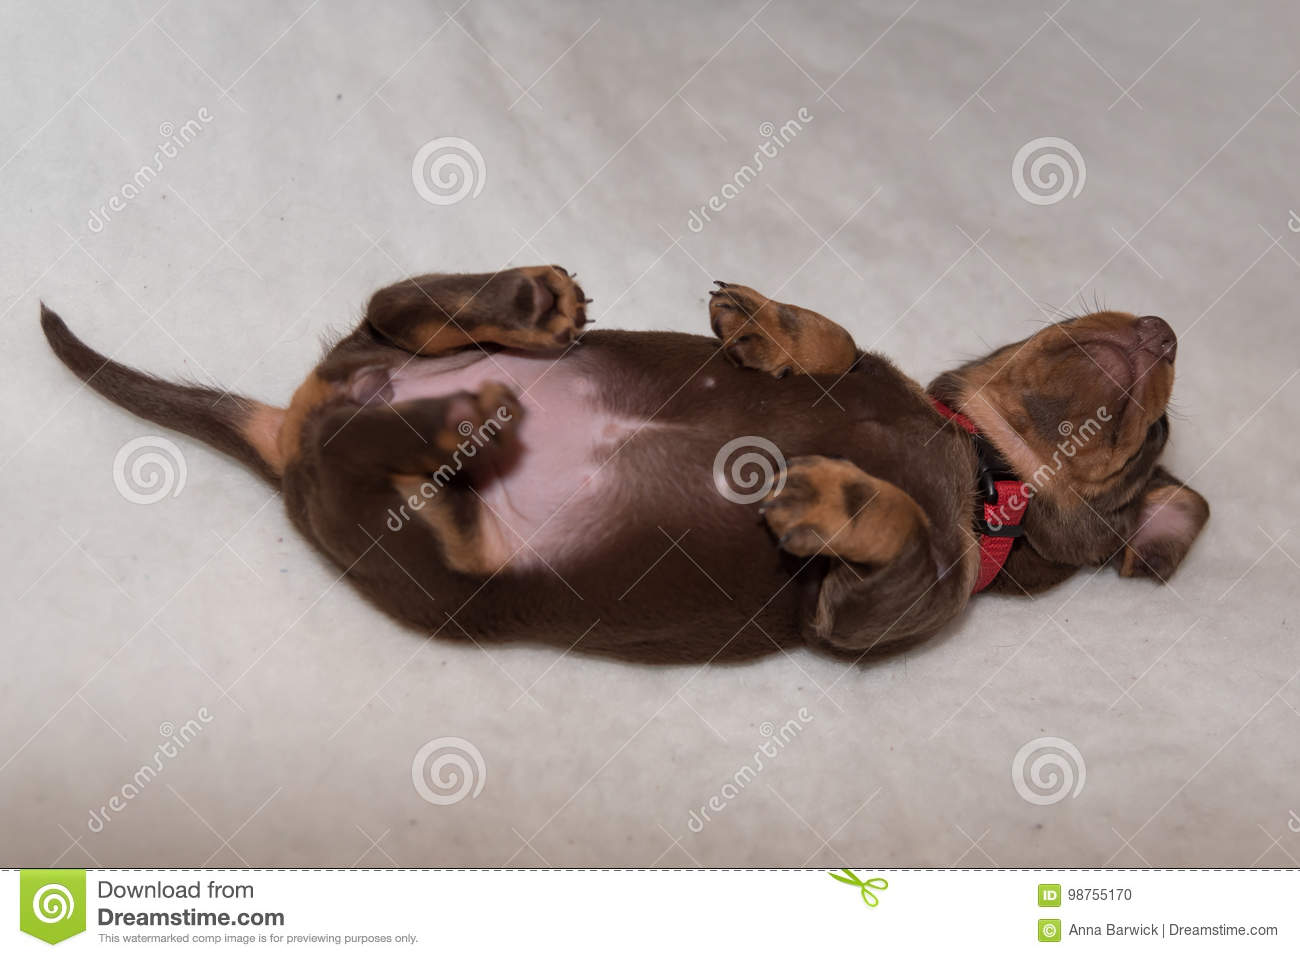 Miniature Dachshund Puppy On Fluffy White Blanket Stock Photo Image Of Adorable Puppy 98755170